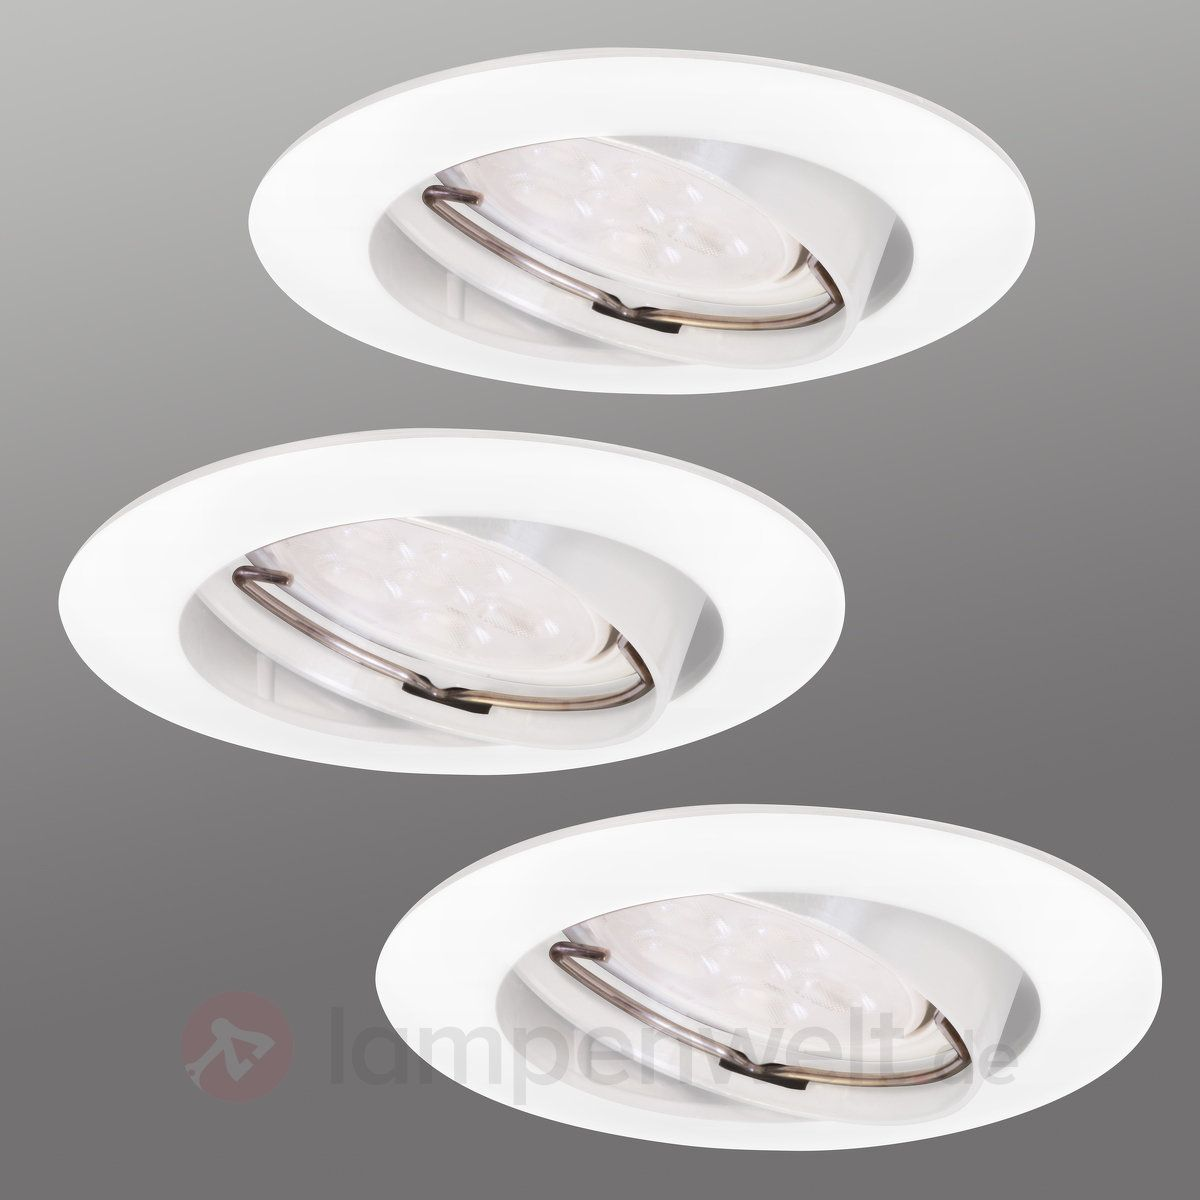 Led Lichtleiste Schwenkbar Led Downlight Dim Schwenkbar 3er Set 8559247x Küche